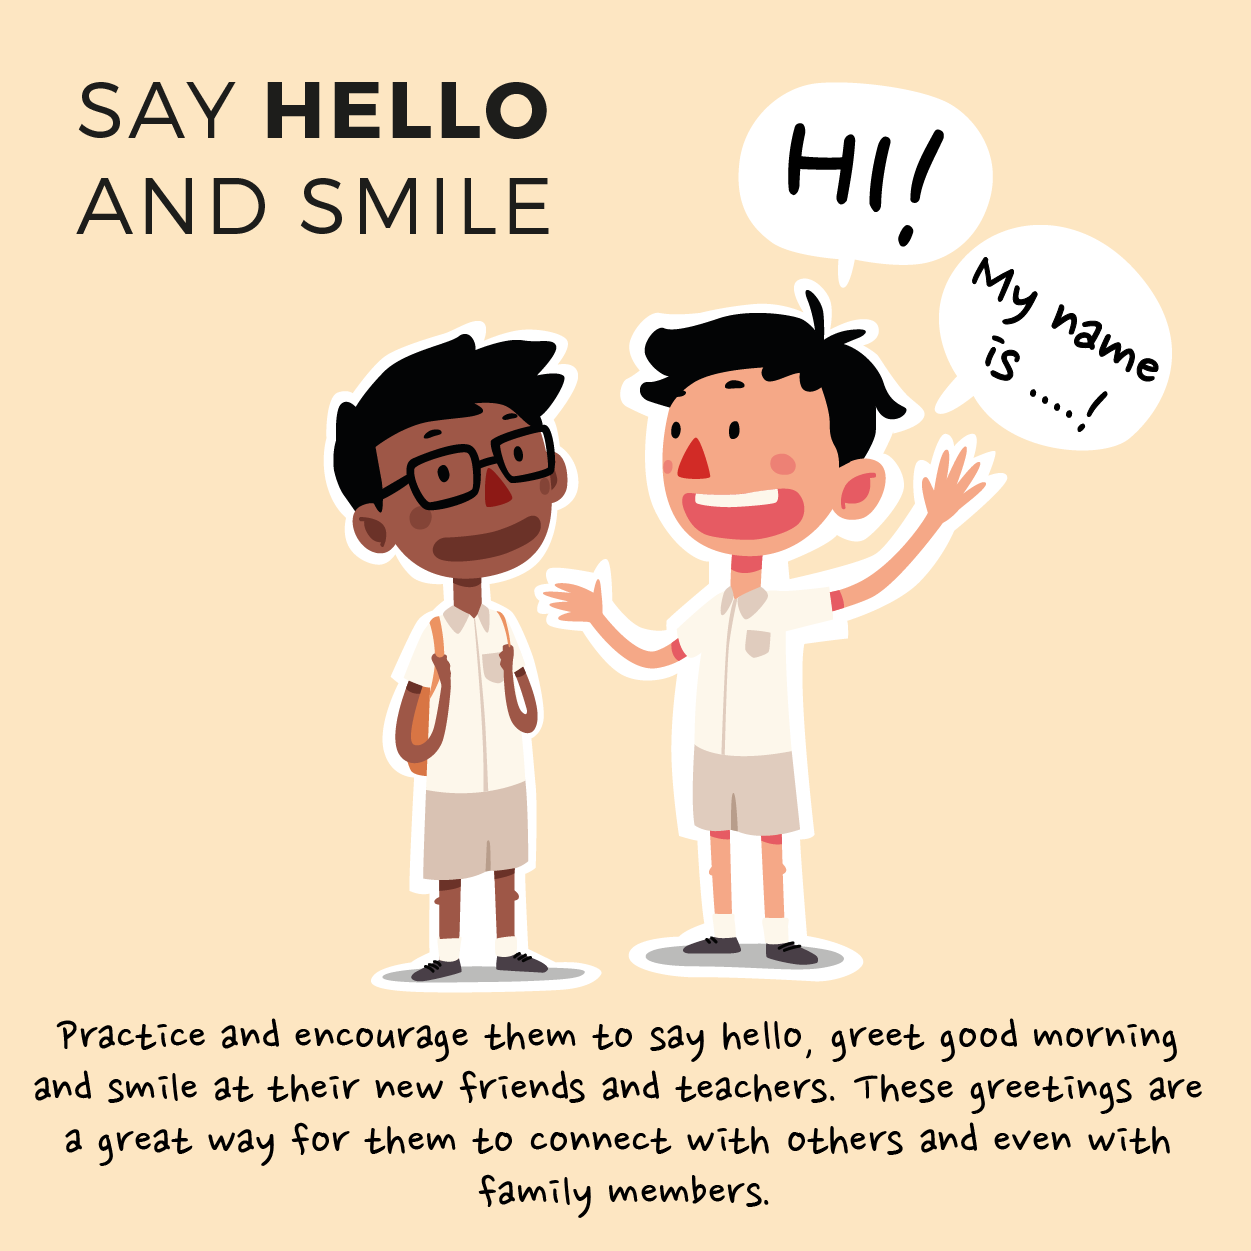 Say hello and smile